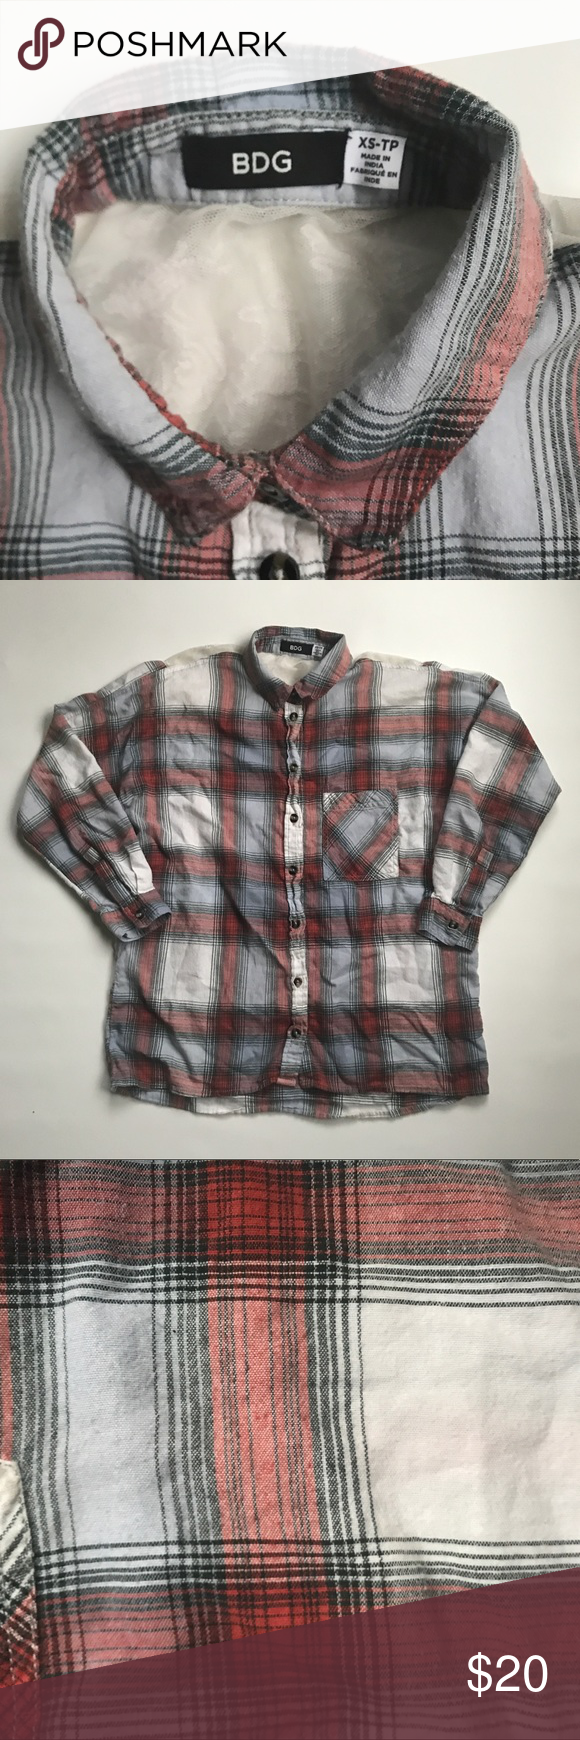 Flannel shirt xs  BDG Urban Outfitters Flannel Lace Plaid Shirt XS